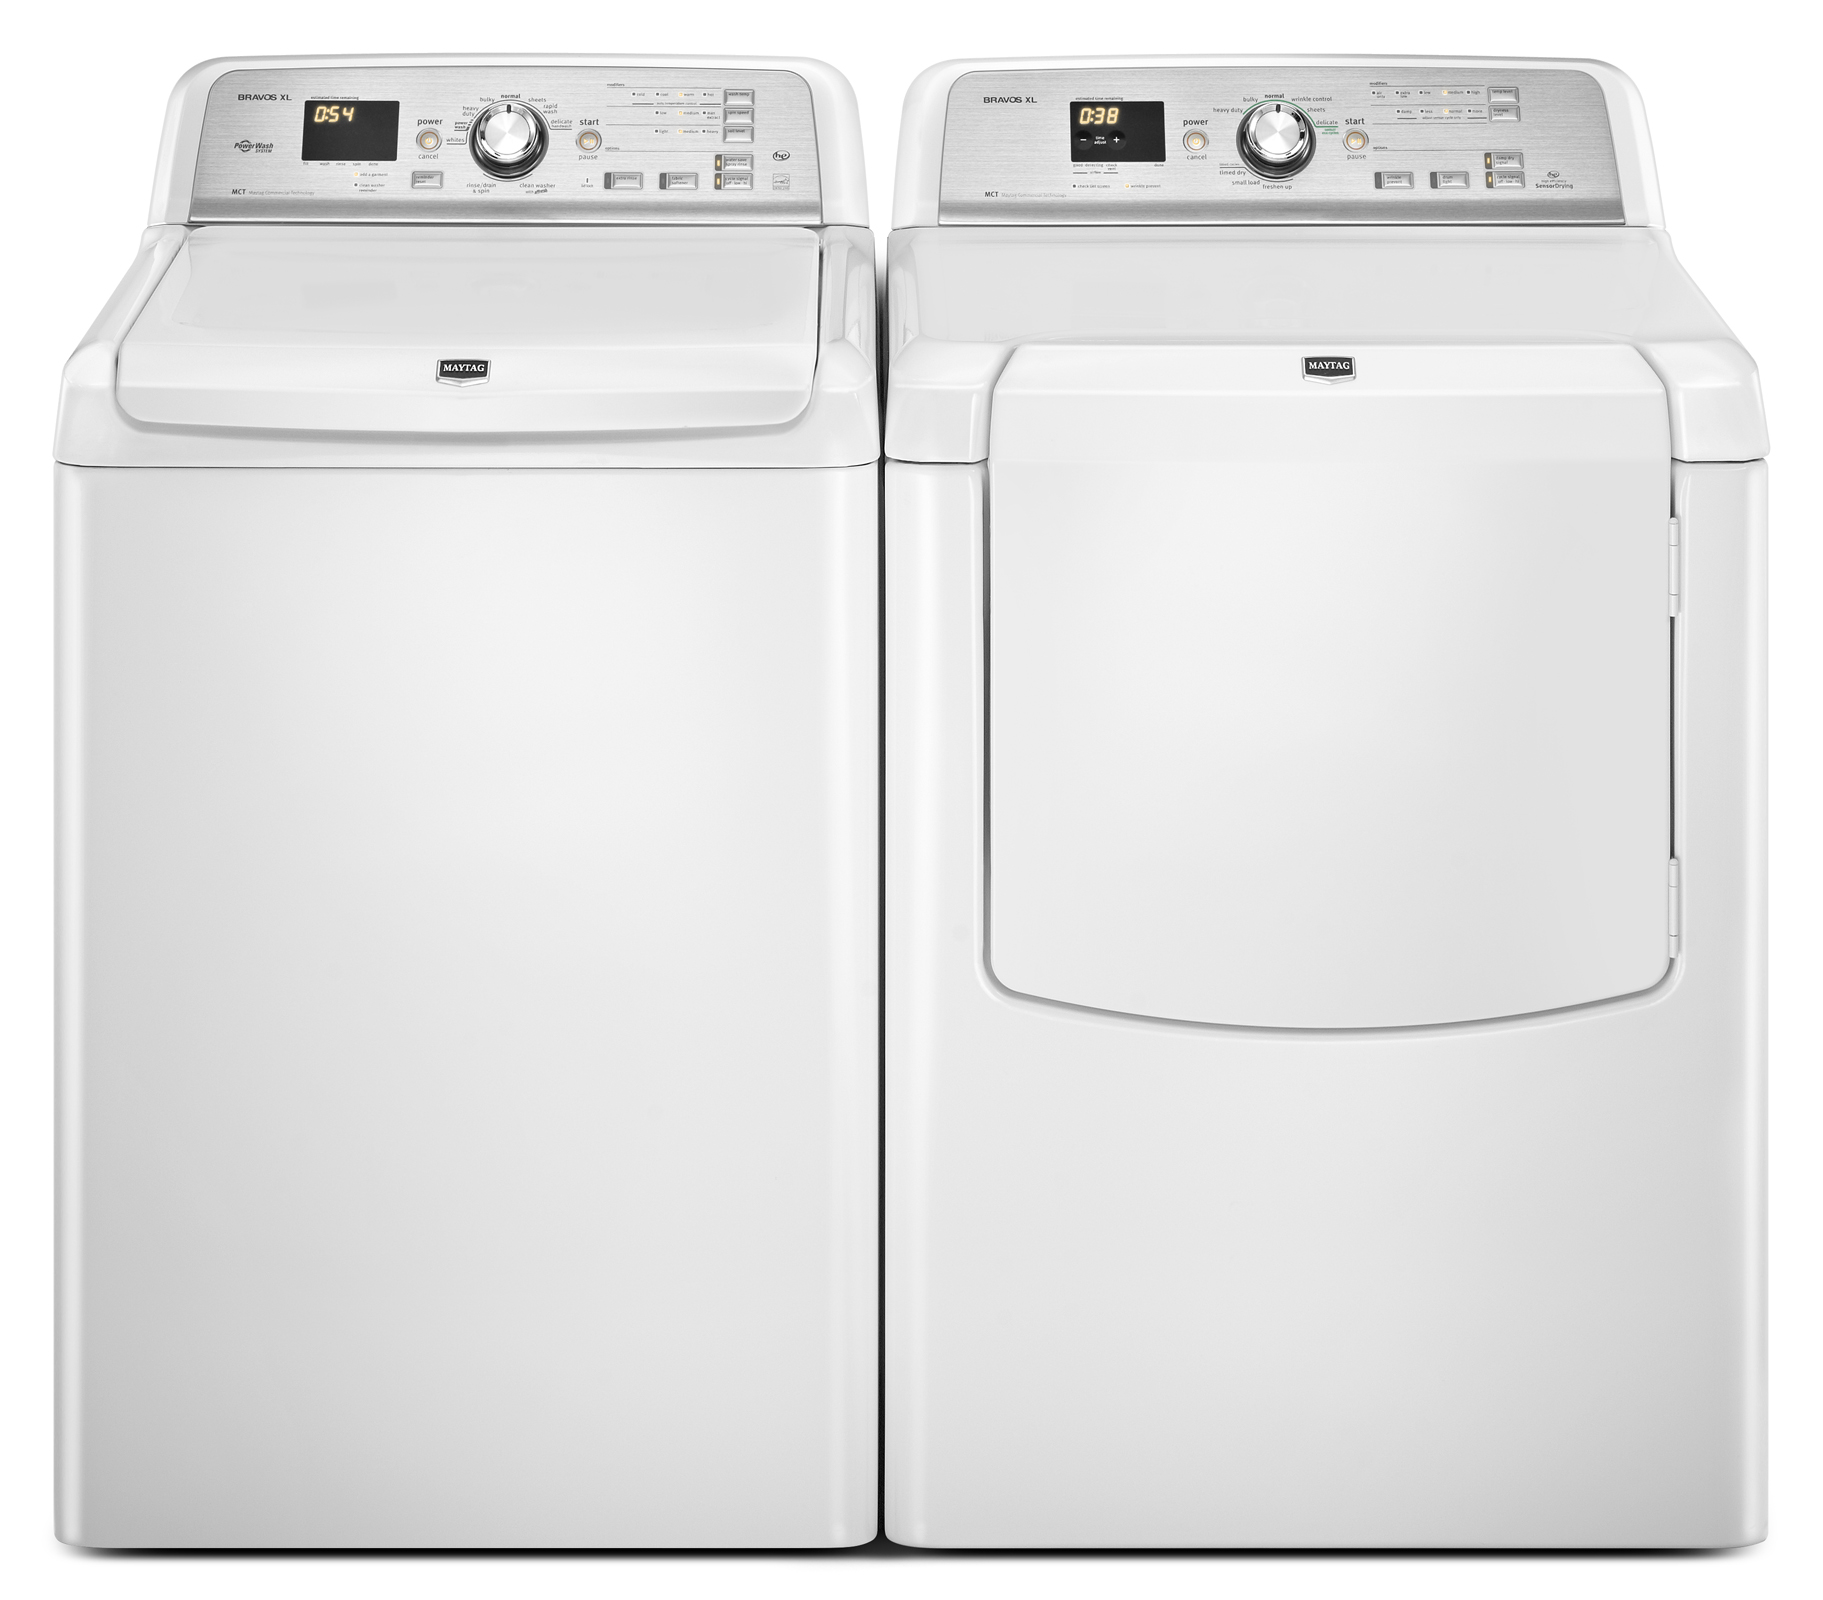 Maytag 7.3 cu. ft. Bravos XL® Electric Dryer w/ Advanced Moisture Sensing - White